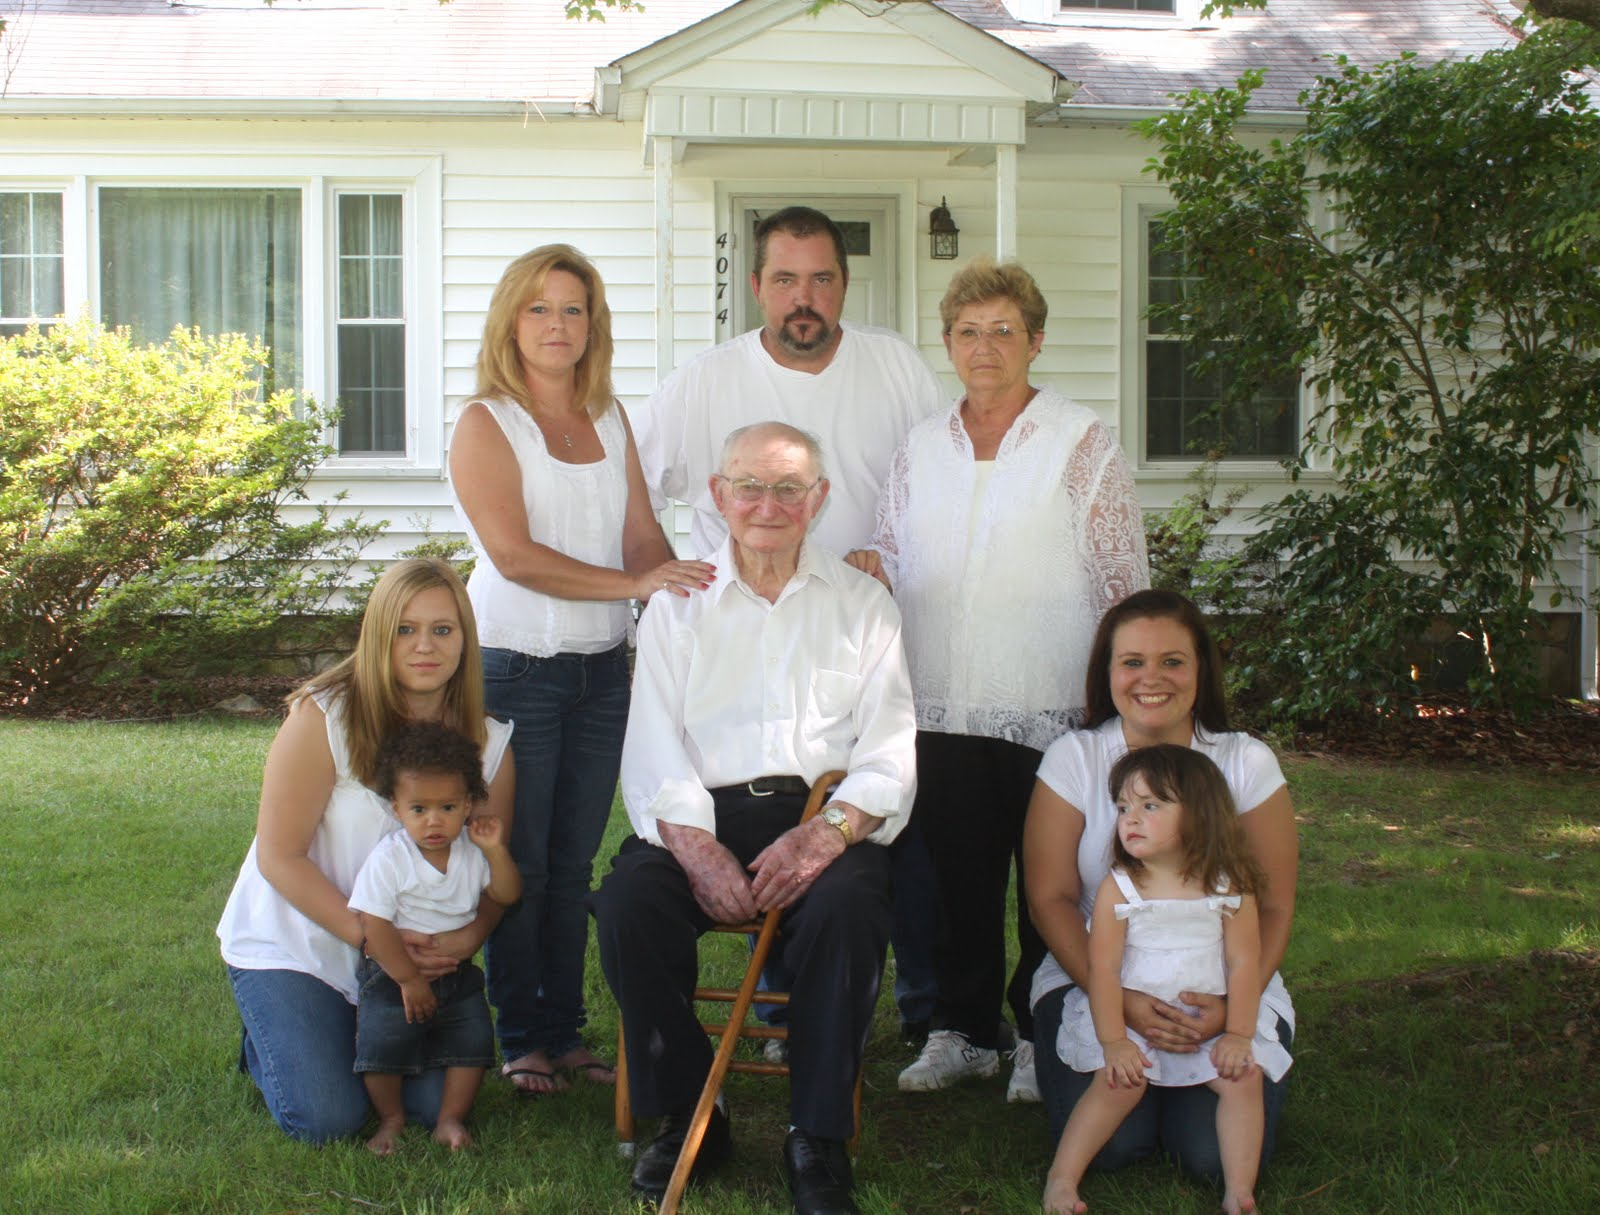 5 generations of family